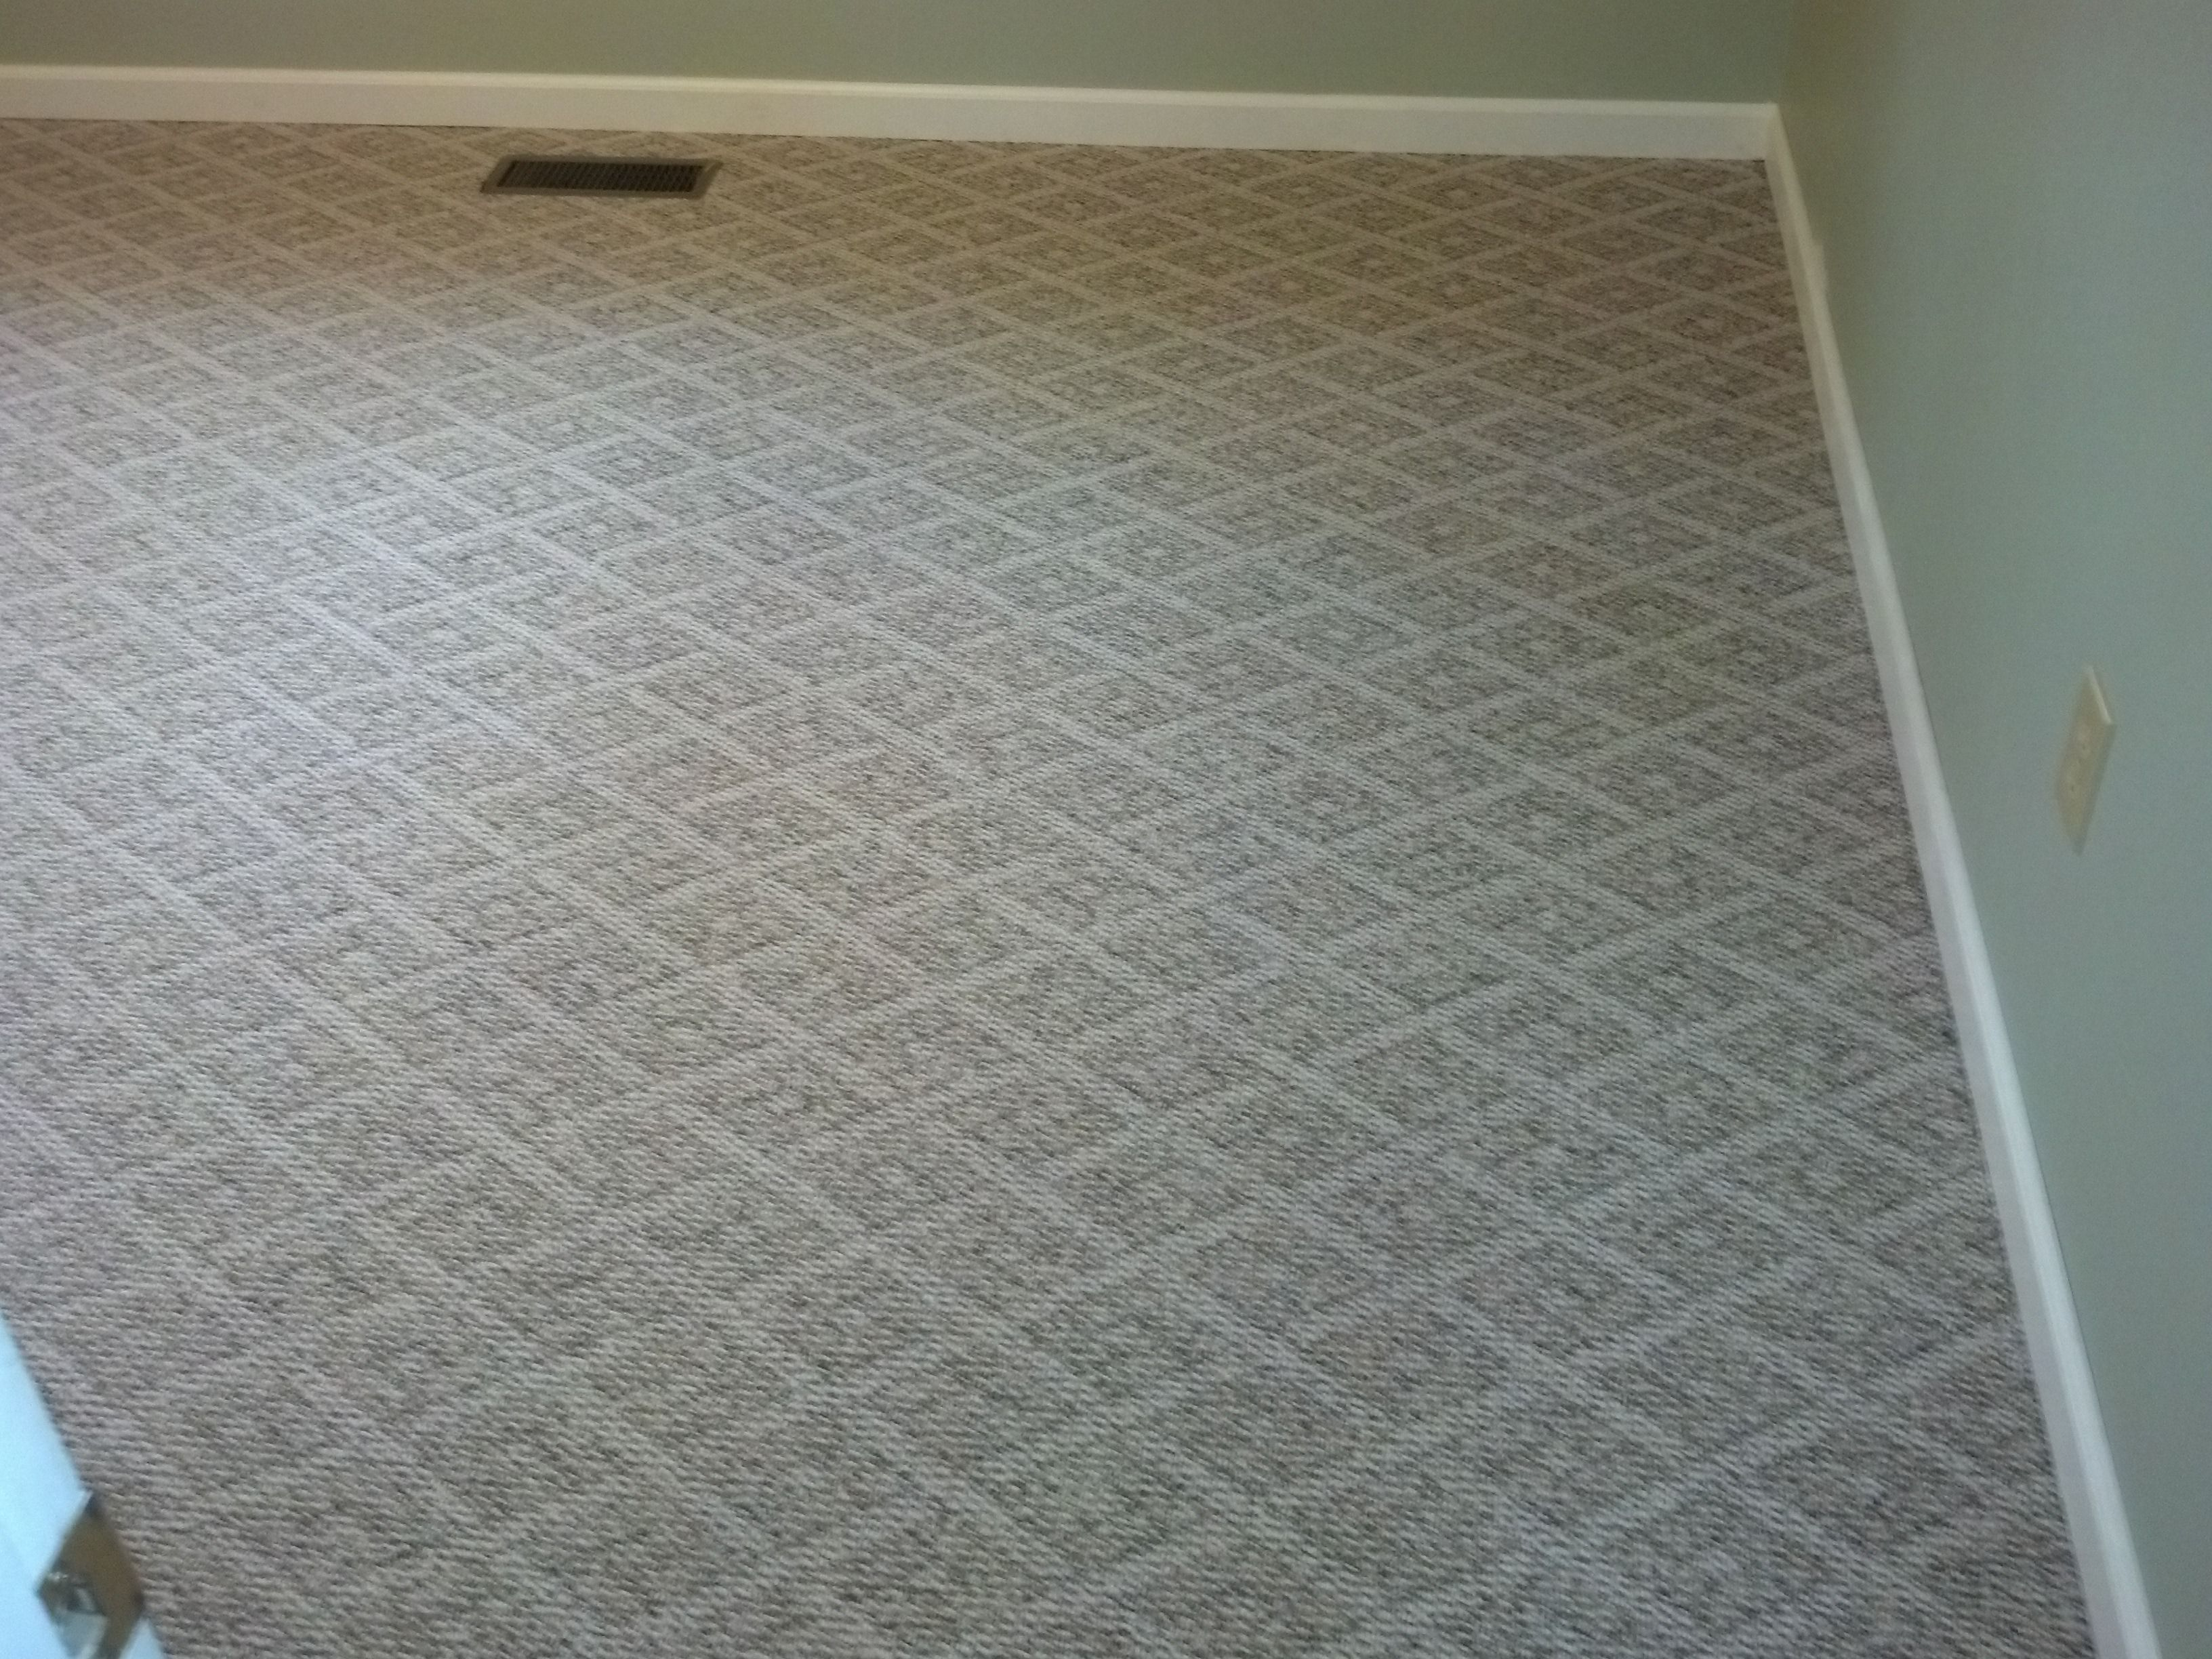 Berber Carpet Cincinnati Oh By Beaulieu Ibndustries South Hampton Color Willowdale Installed In Family Room Home Based Flooring